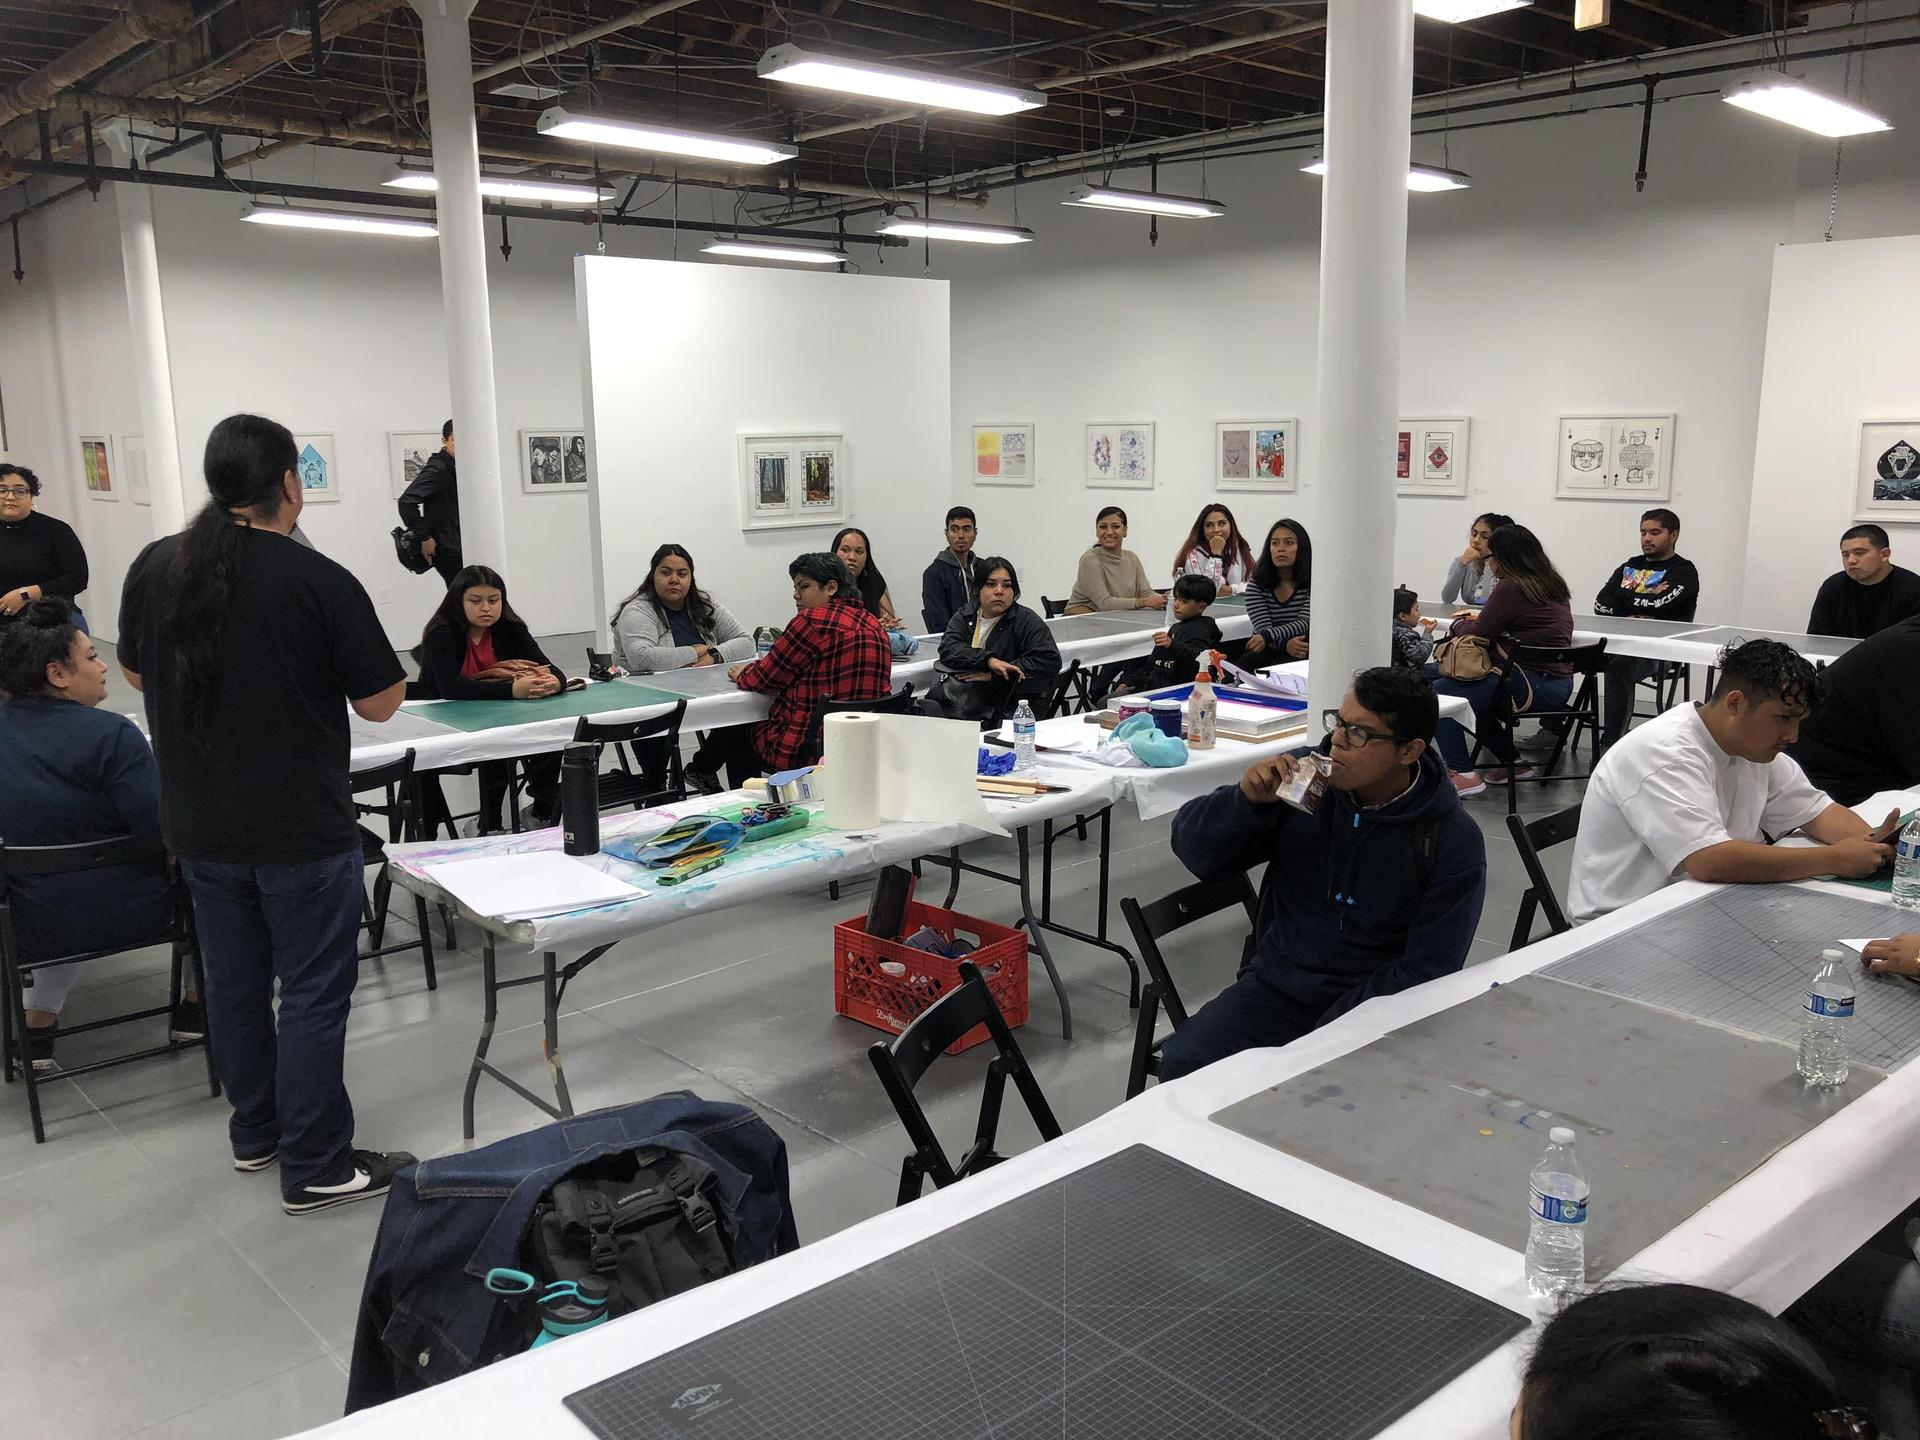 LA CAUSA students work with Self Help Graphics